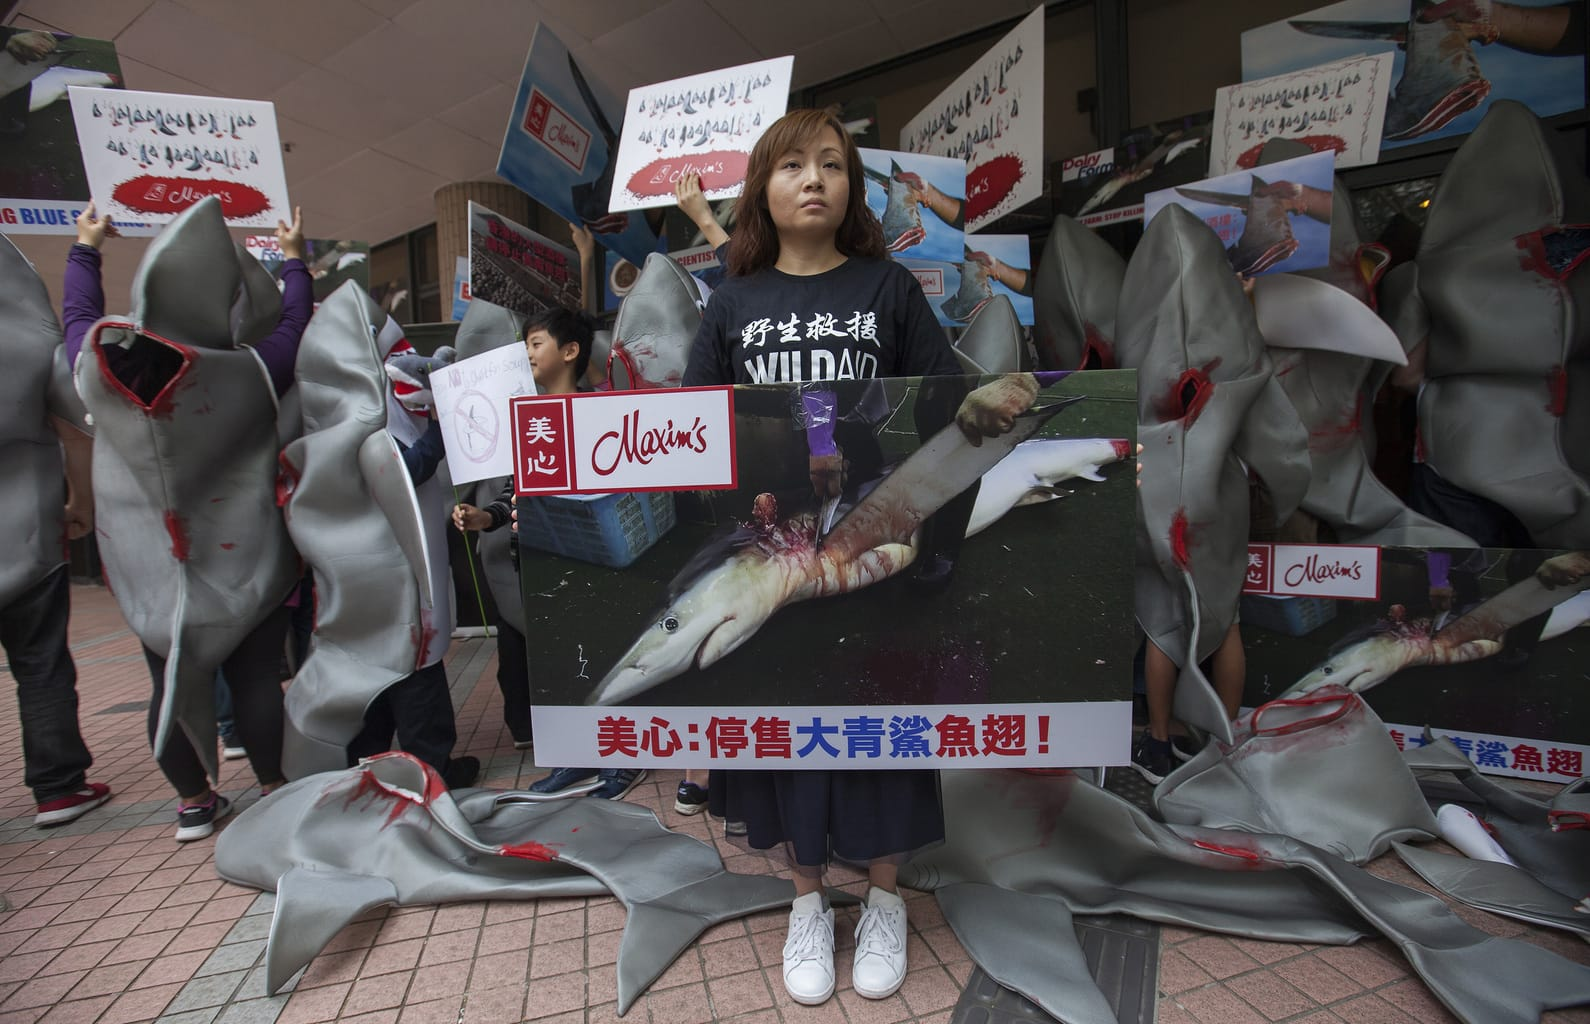 shark fin protest by Socheid wikimedia commons